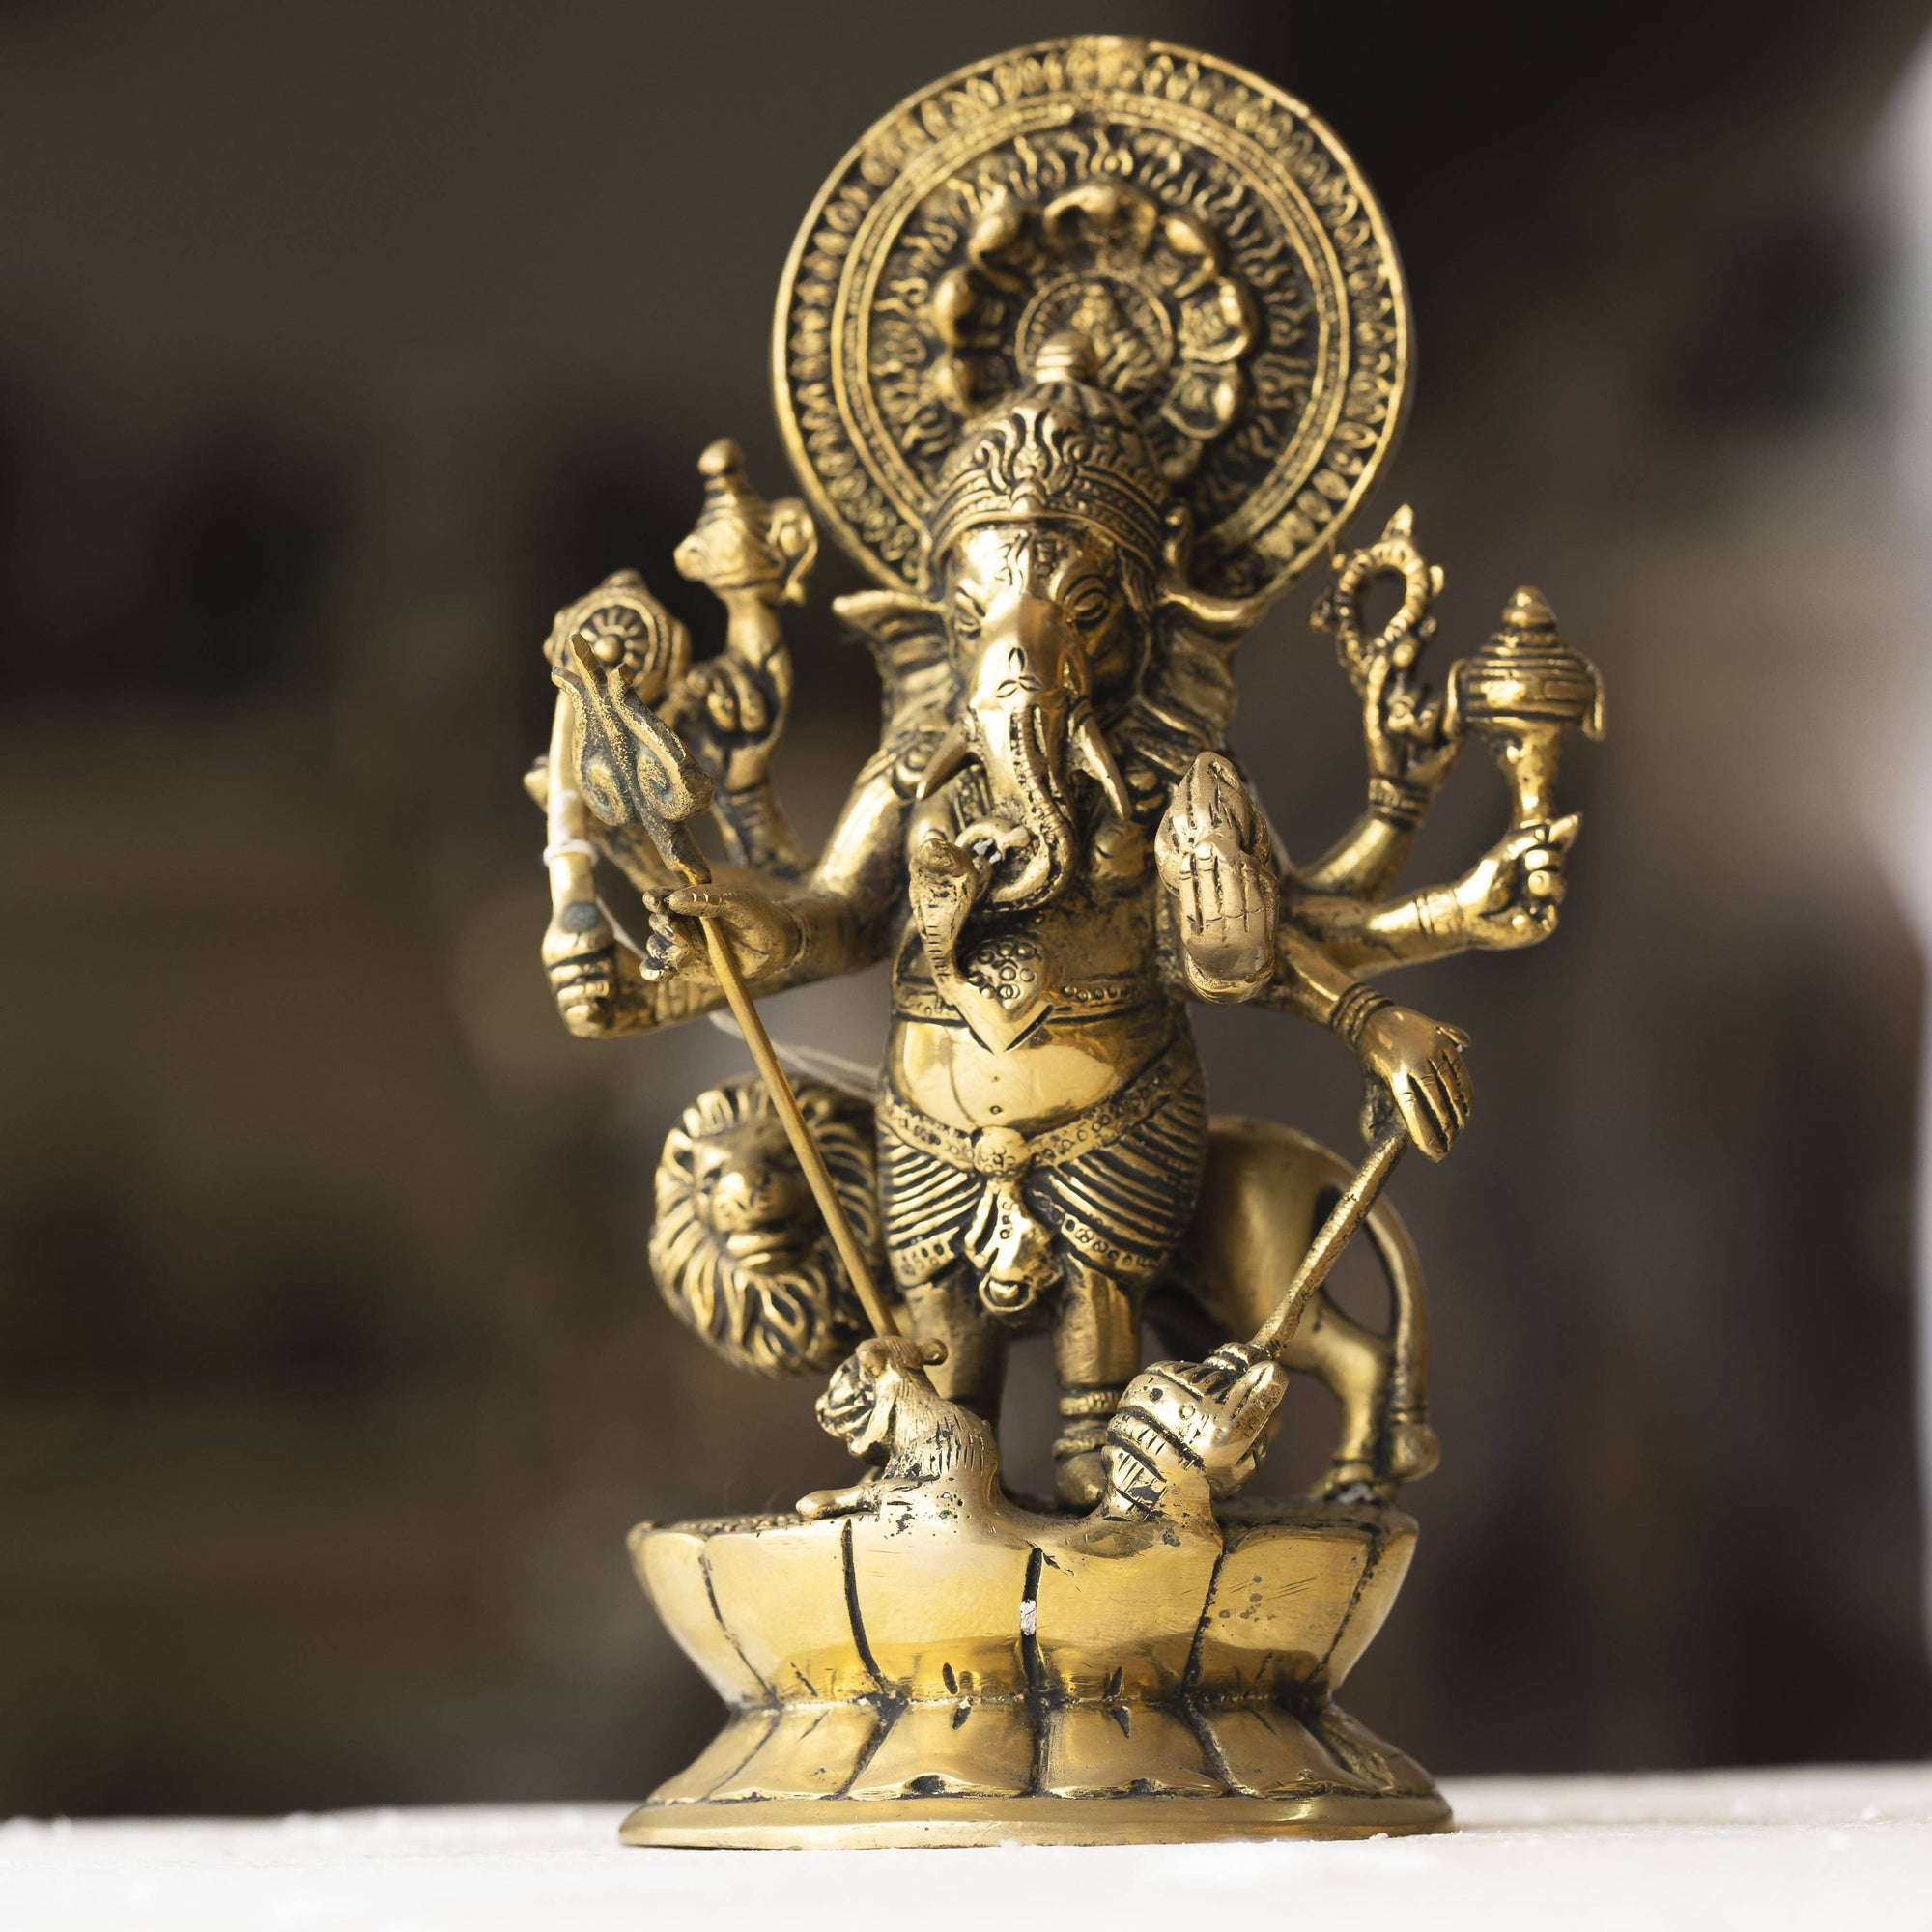 Myoksha Lord Ganesha Standing Brass Idol - For Auspicious Beginnings